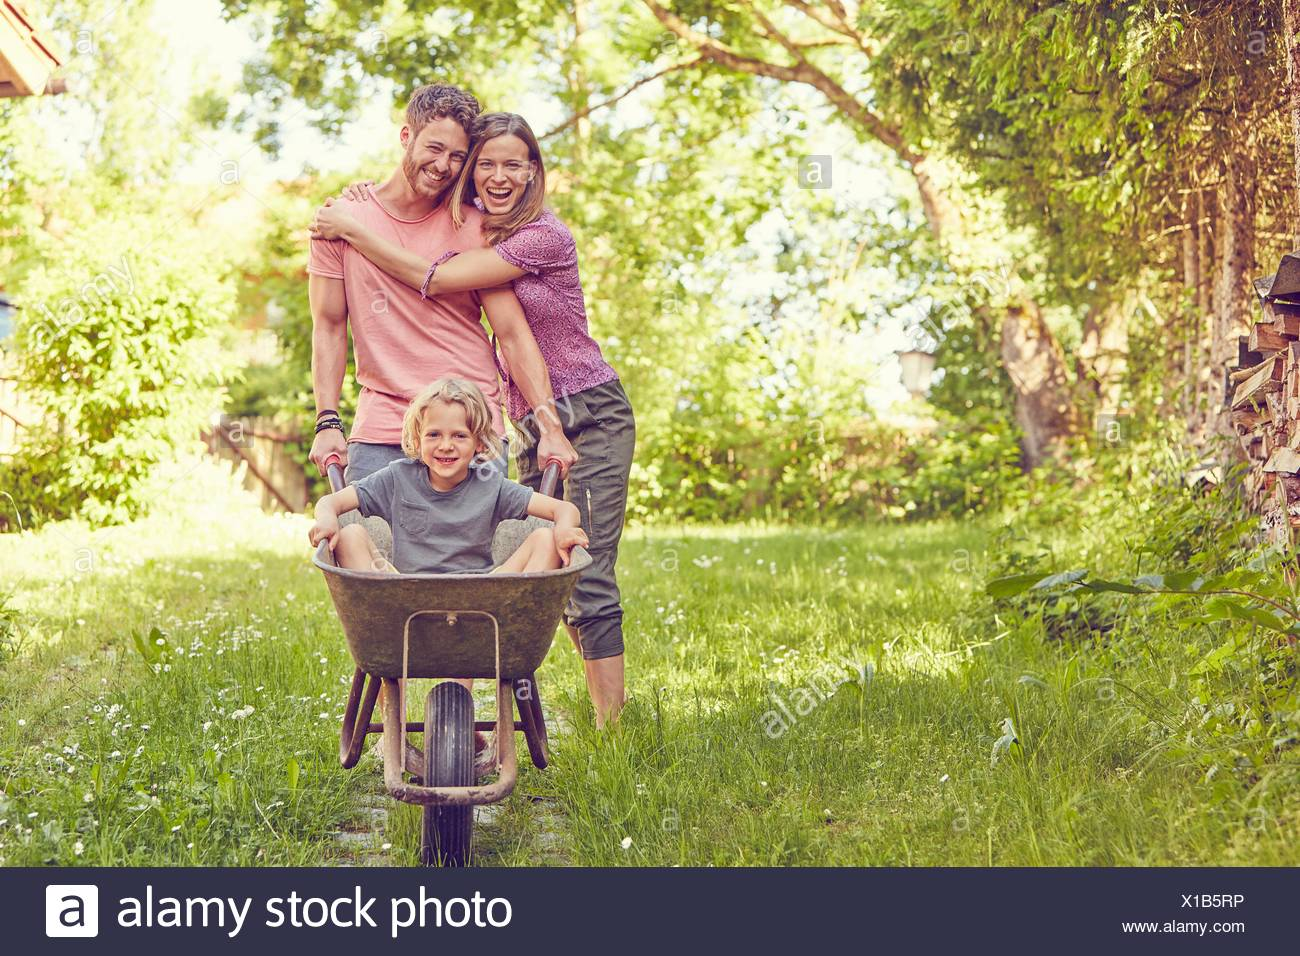 Portrait of young family, father pushing son in wheelbarrow - Stock Image